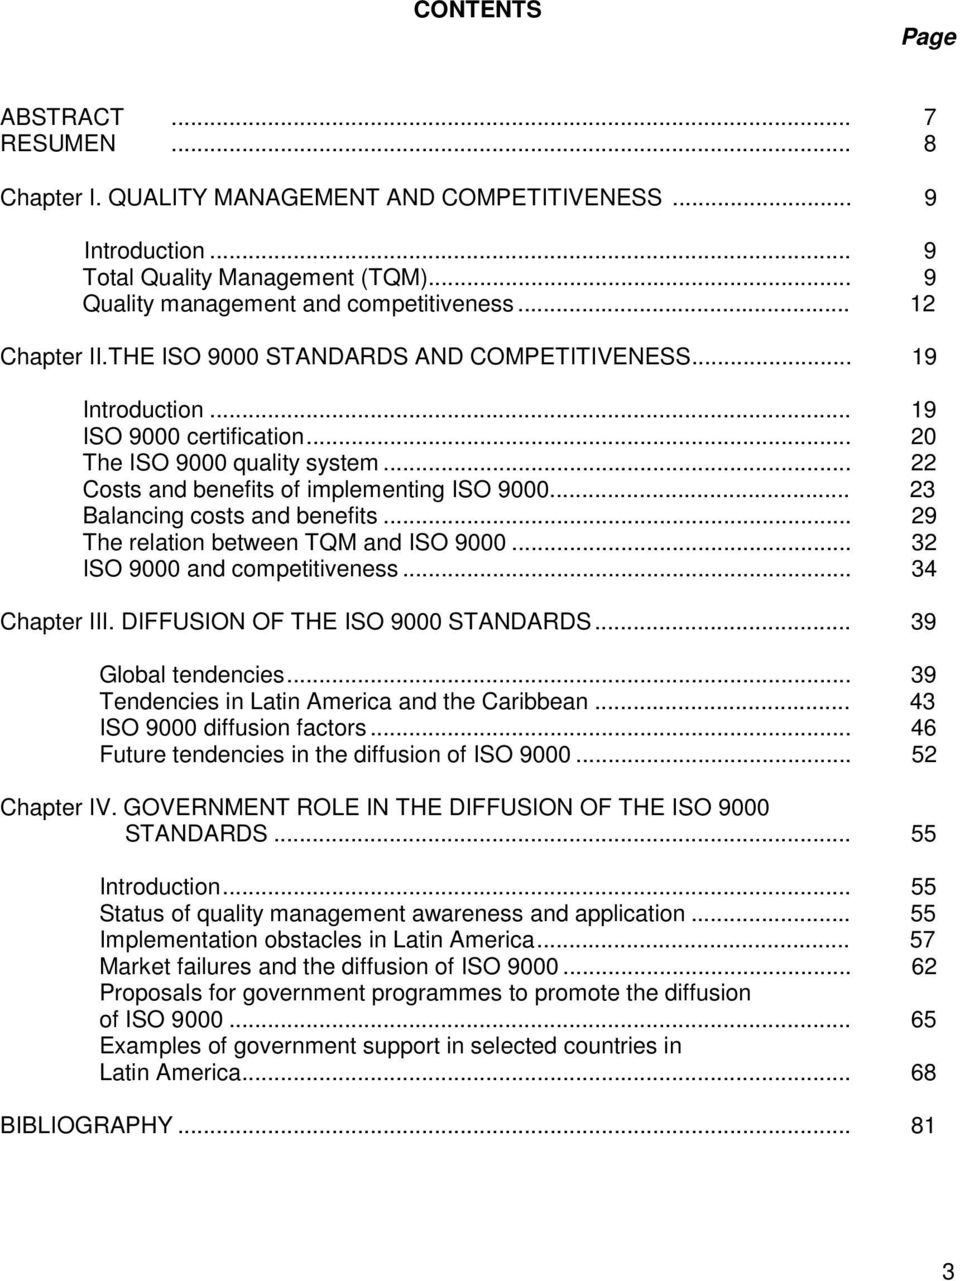 .. 23 Balancing costs and benefits... 29 The relation between TQM and ISO 9000... 32 ISO 9000 and competitiveness... 34 Chapter III. DIFFUSION OF THE ISO 9000 STANDARDS... 39 Global tendencies.